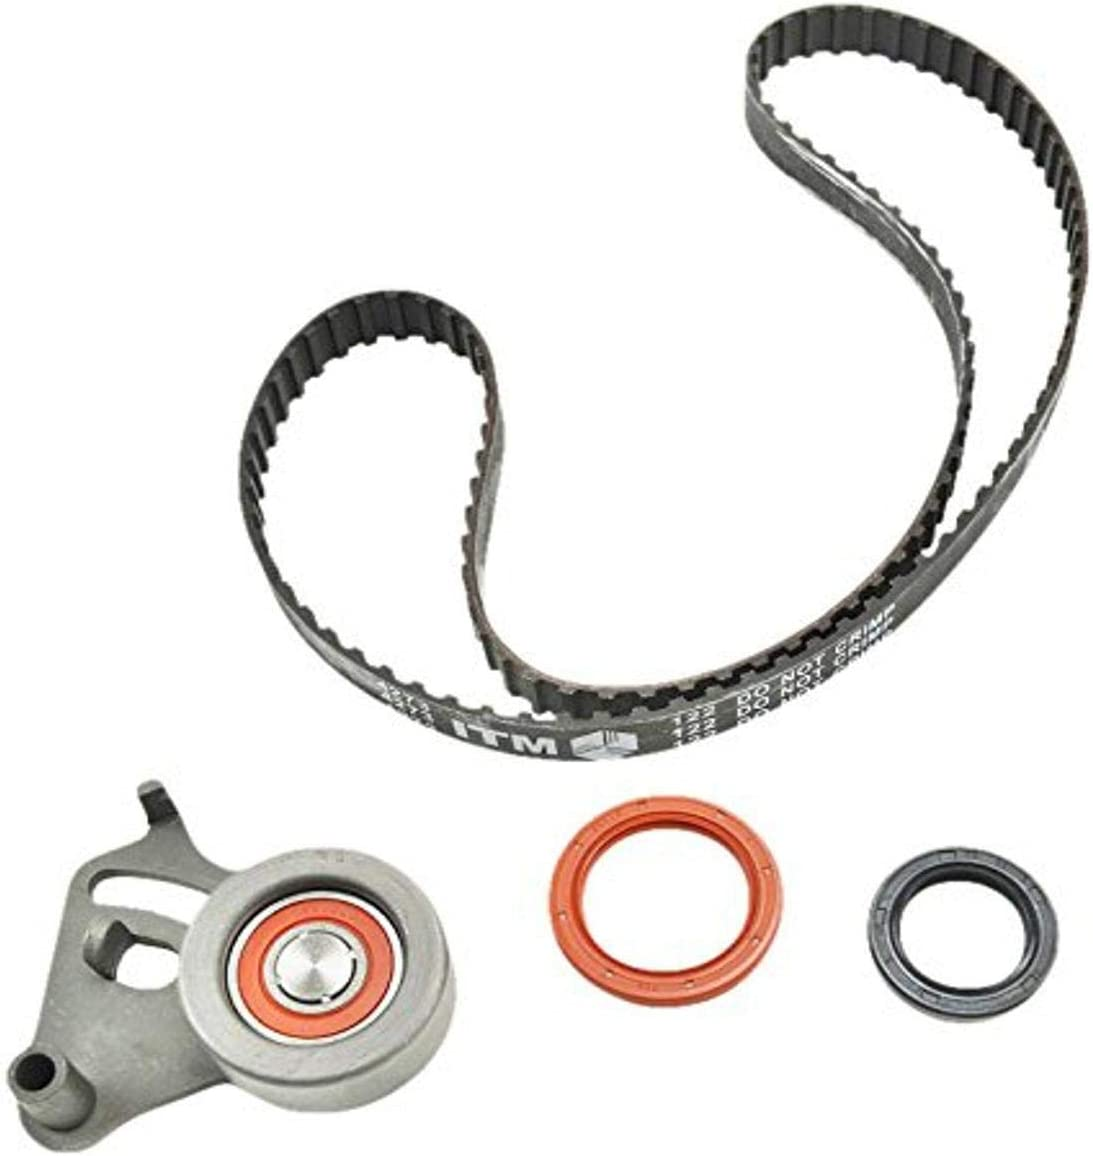 ITM Engine Sale price SEAL limited product Components ITM122 Timing Kit 1986-1995 for Isuzu Belt